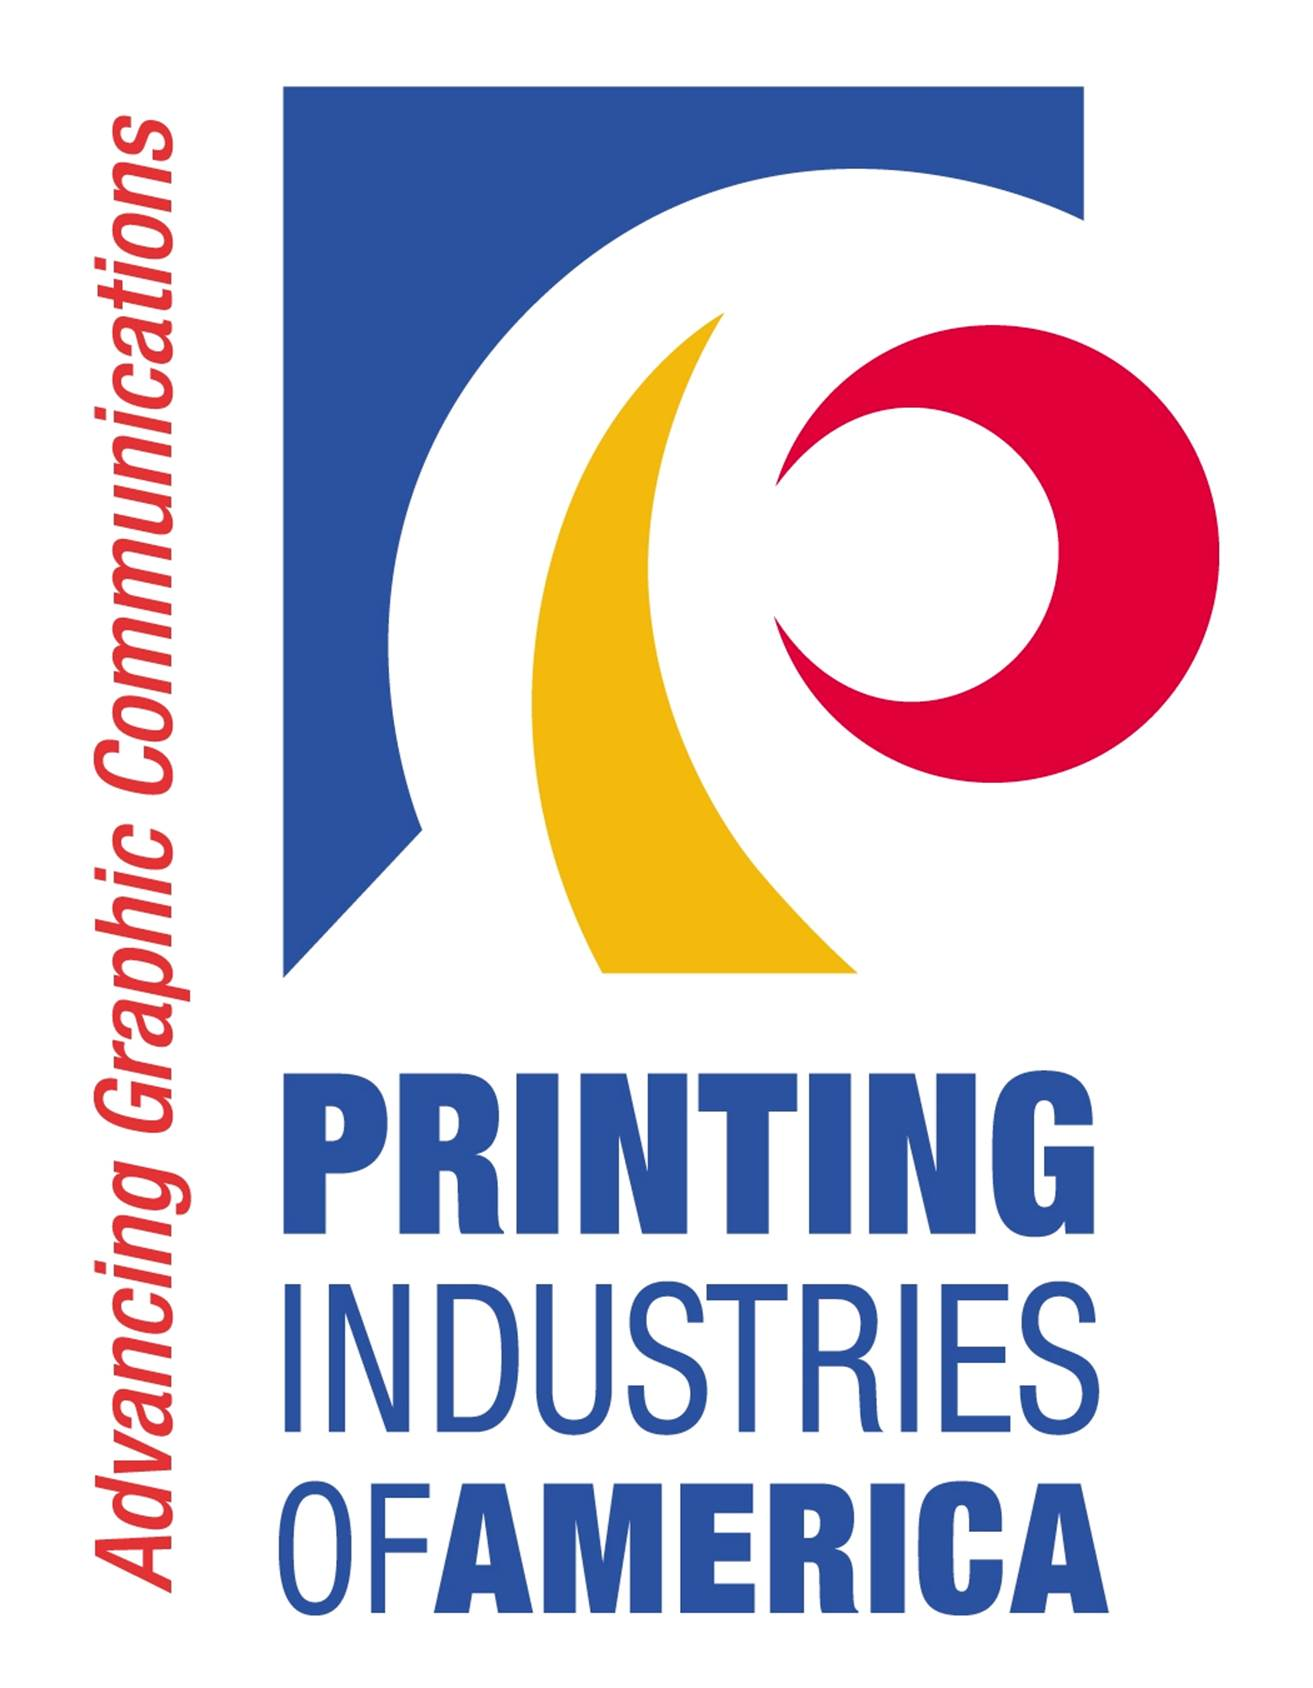 Zairmail is a member of the Printing Industries of America Association